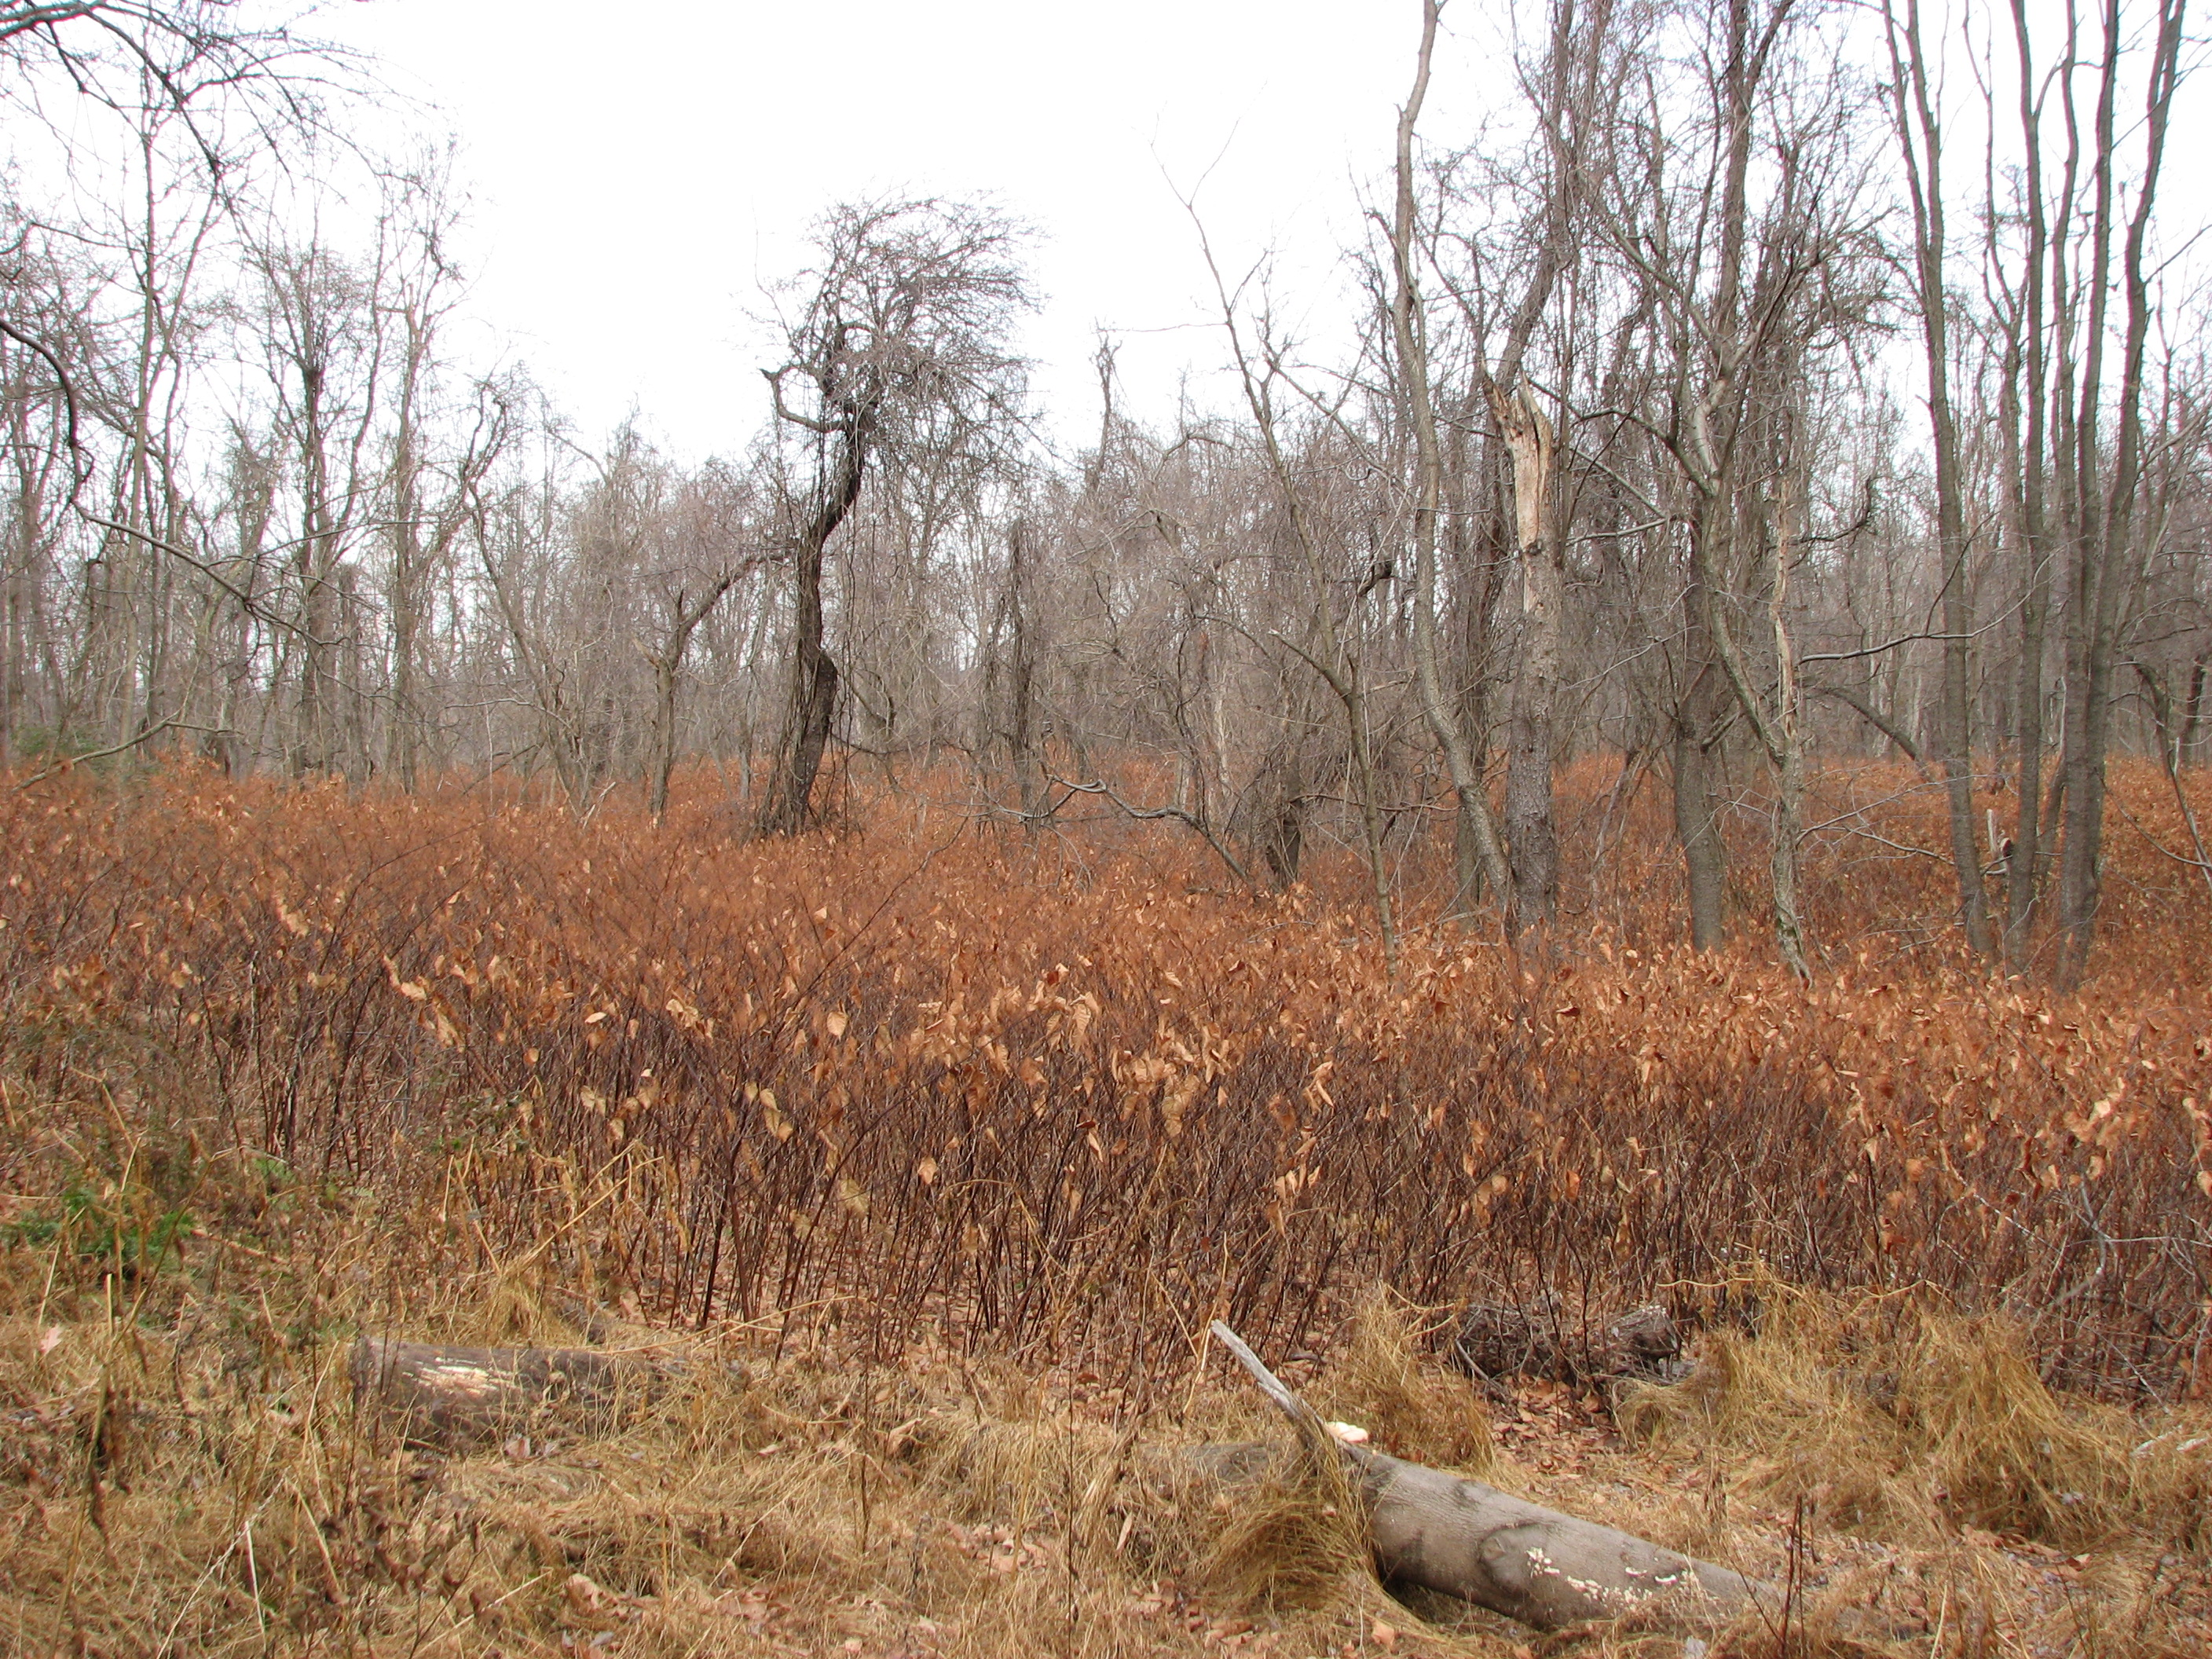 51 +/- Acres, Woods, Fields, River Frontage